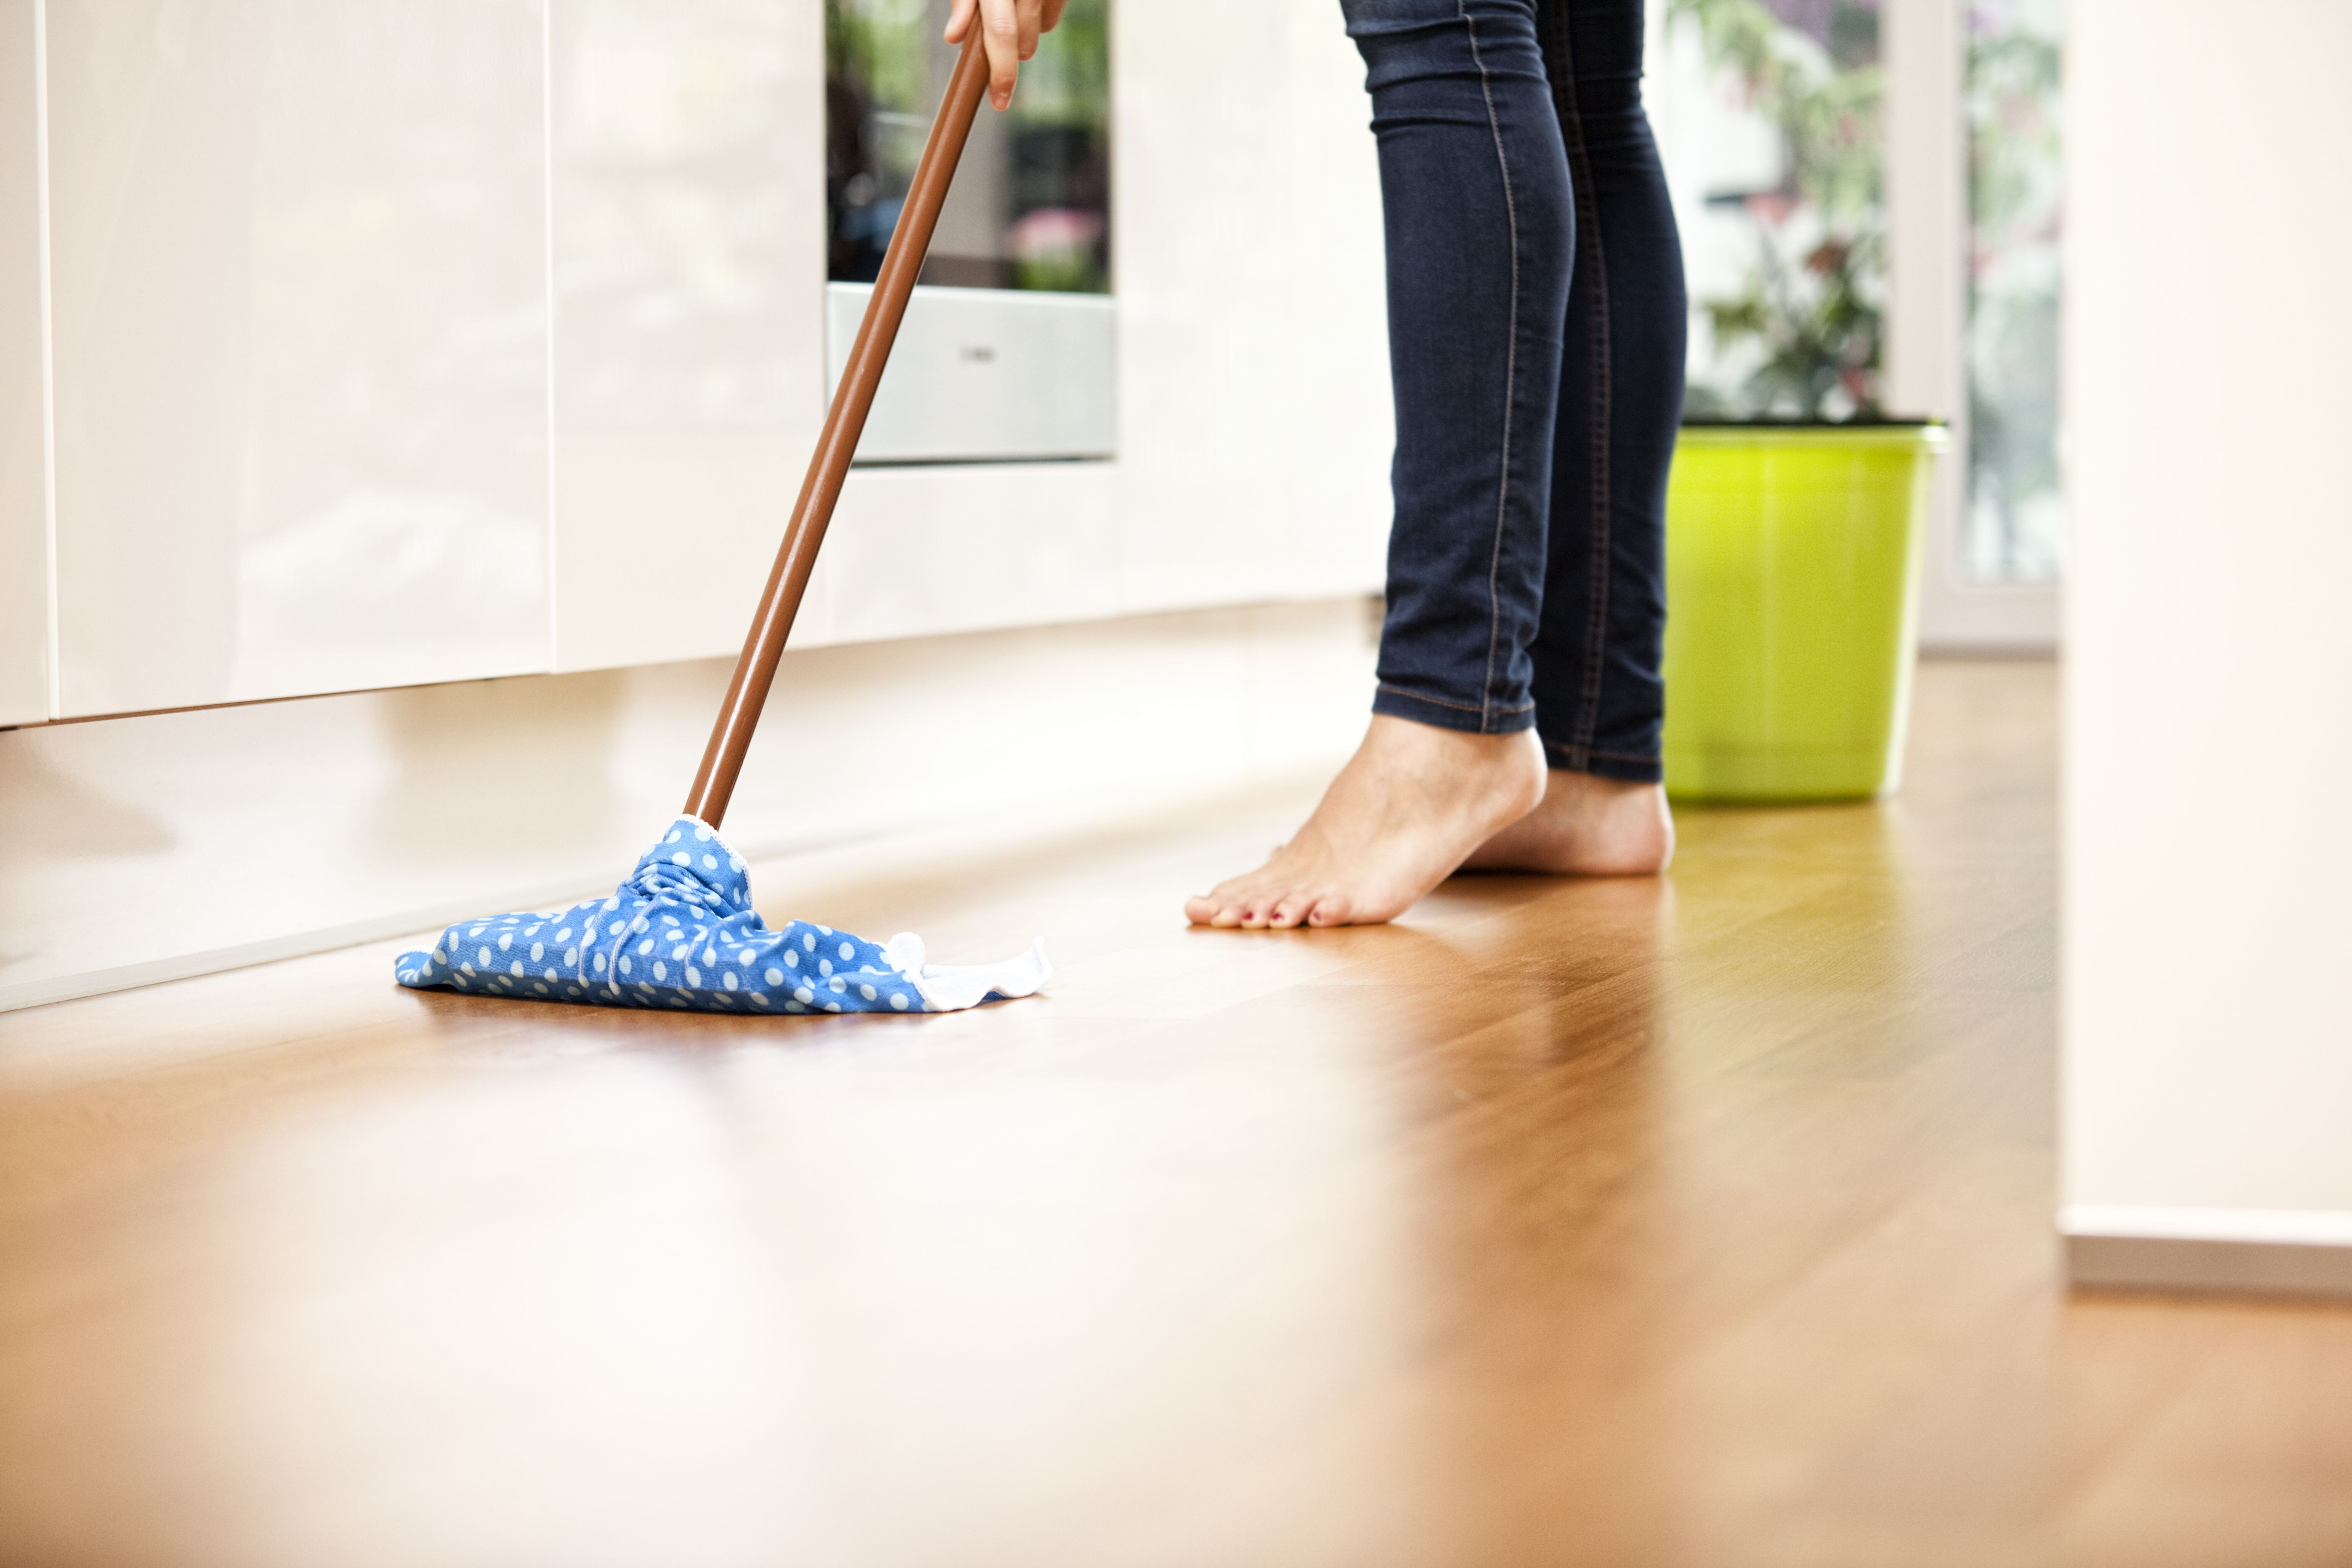 bona hardwood floor cleaning machine of the right cleaners for your solid hardwood flooring throughout woman wiping the floor 588494585 585049b43df78c491ebc200a